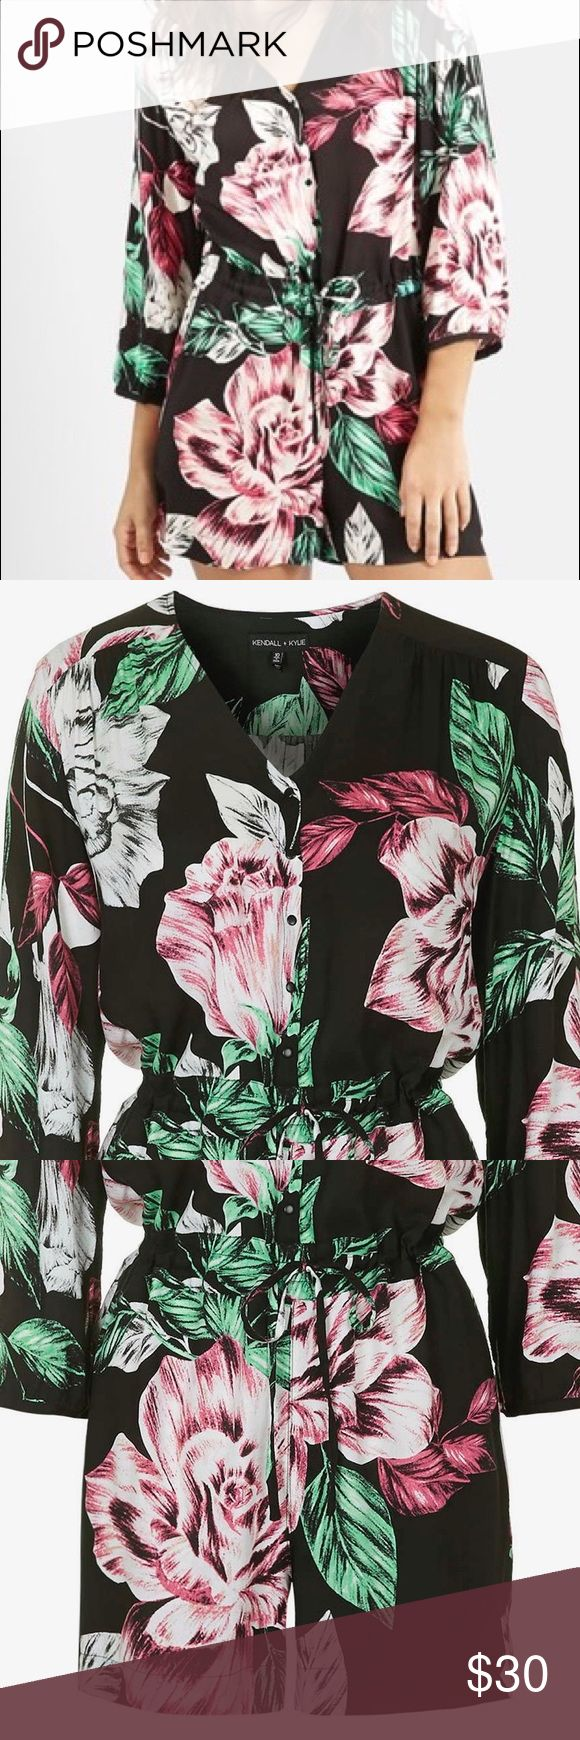 Kendall + Kylie Topshop Romper Floral romper from Kendal + Kylie for Topshop. Great for going out or romping around town :) UK 10 EURO 38 US 6 Kendall & Kylie Pants Jumpsuits & Rompers